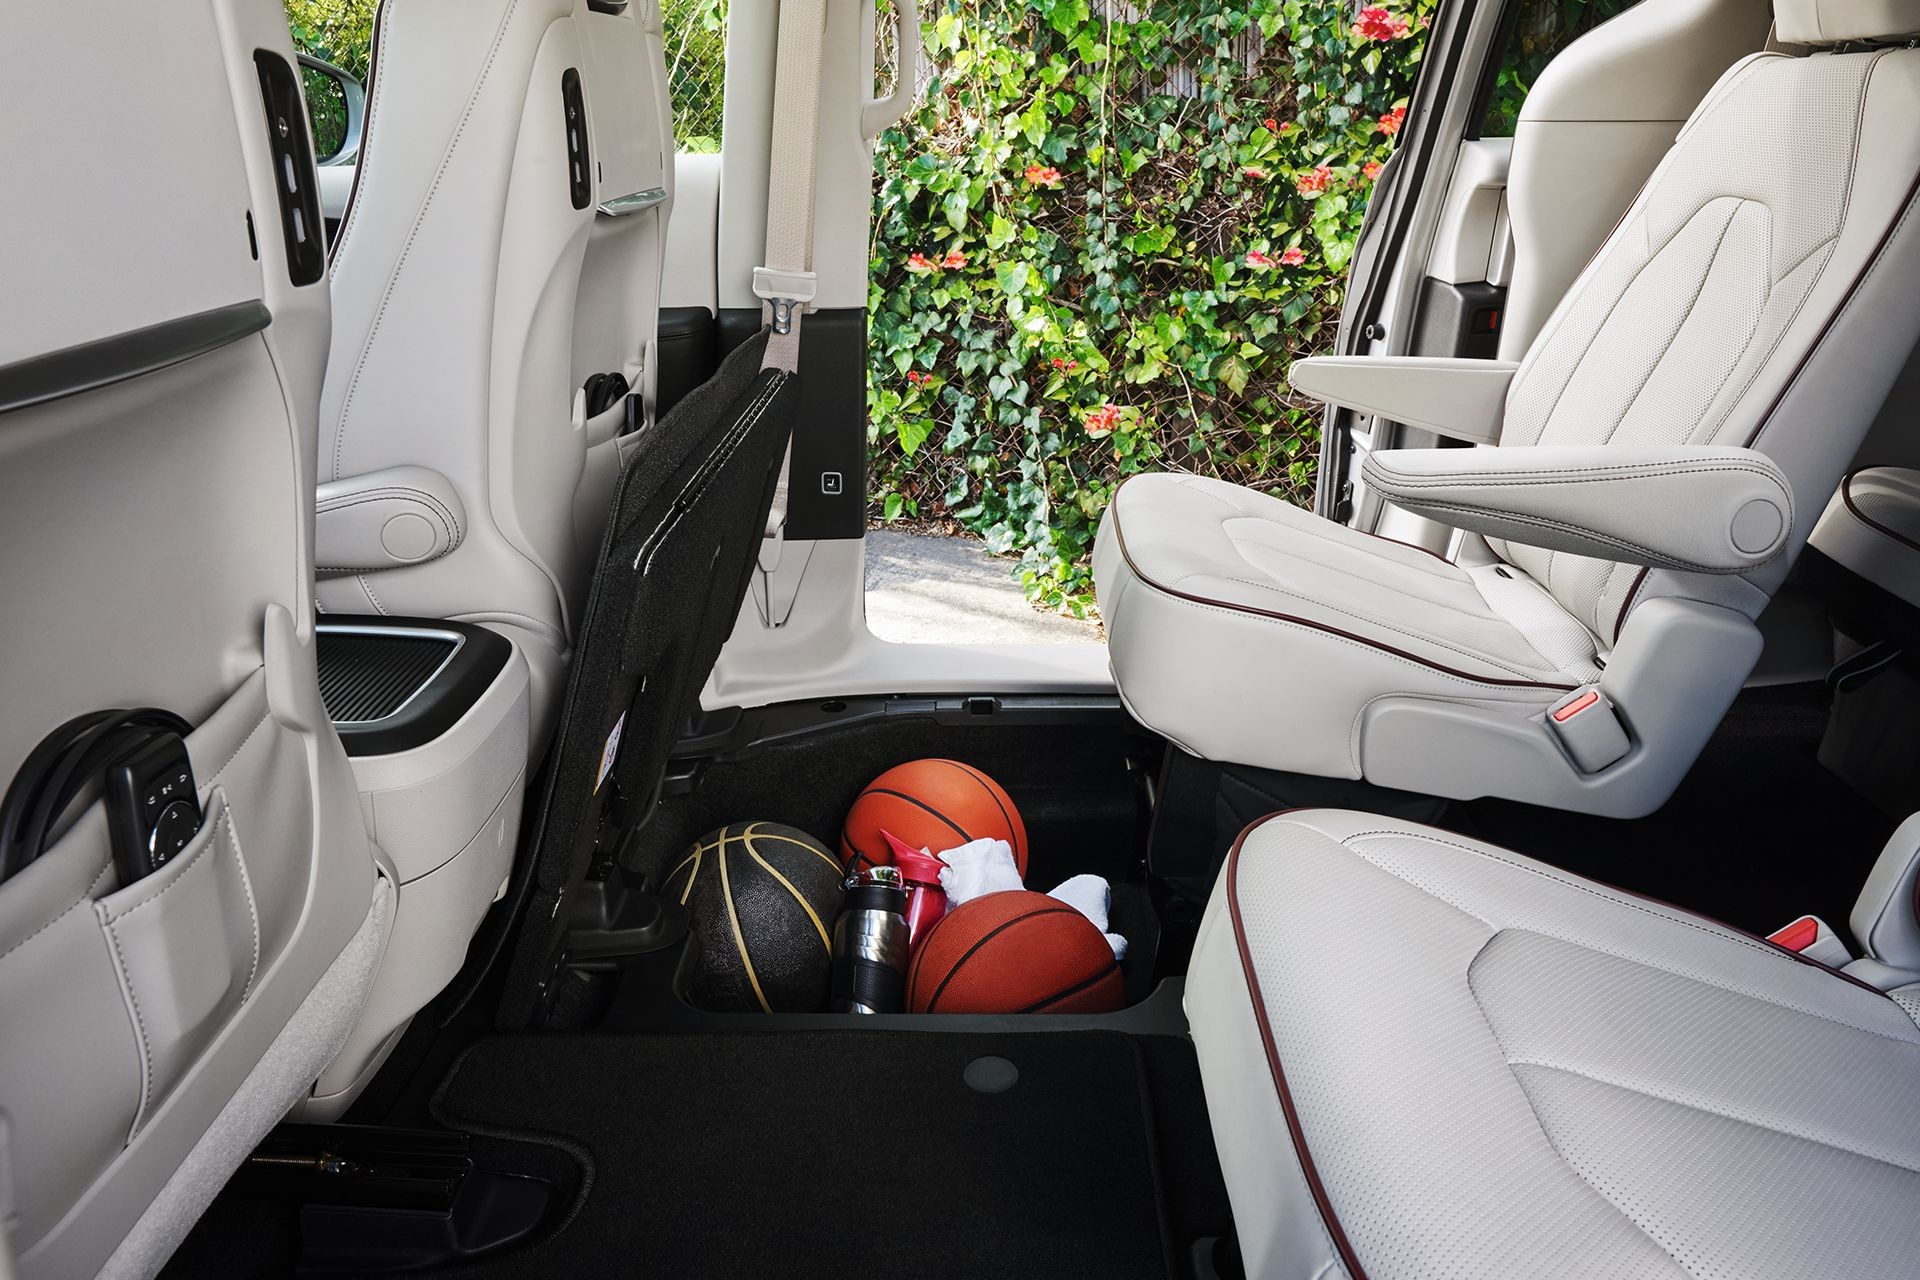 2018 Chrysler Pacifica Interior Storage